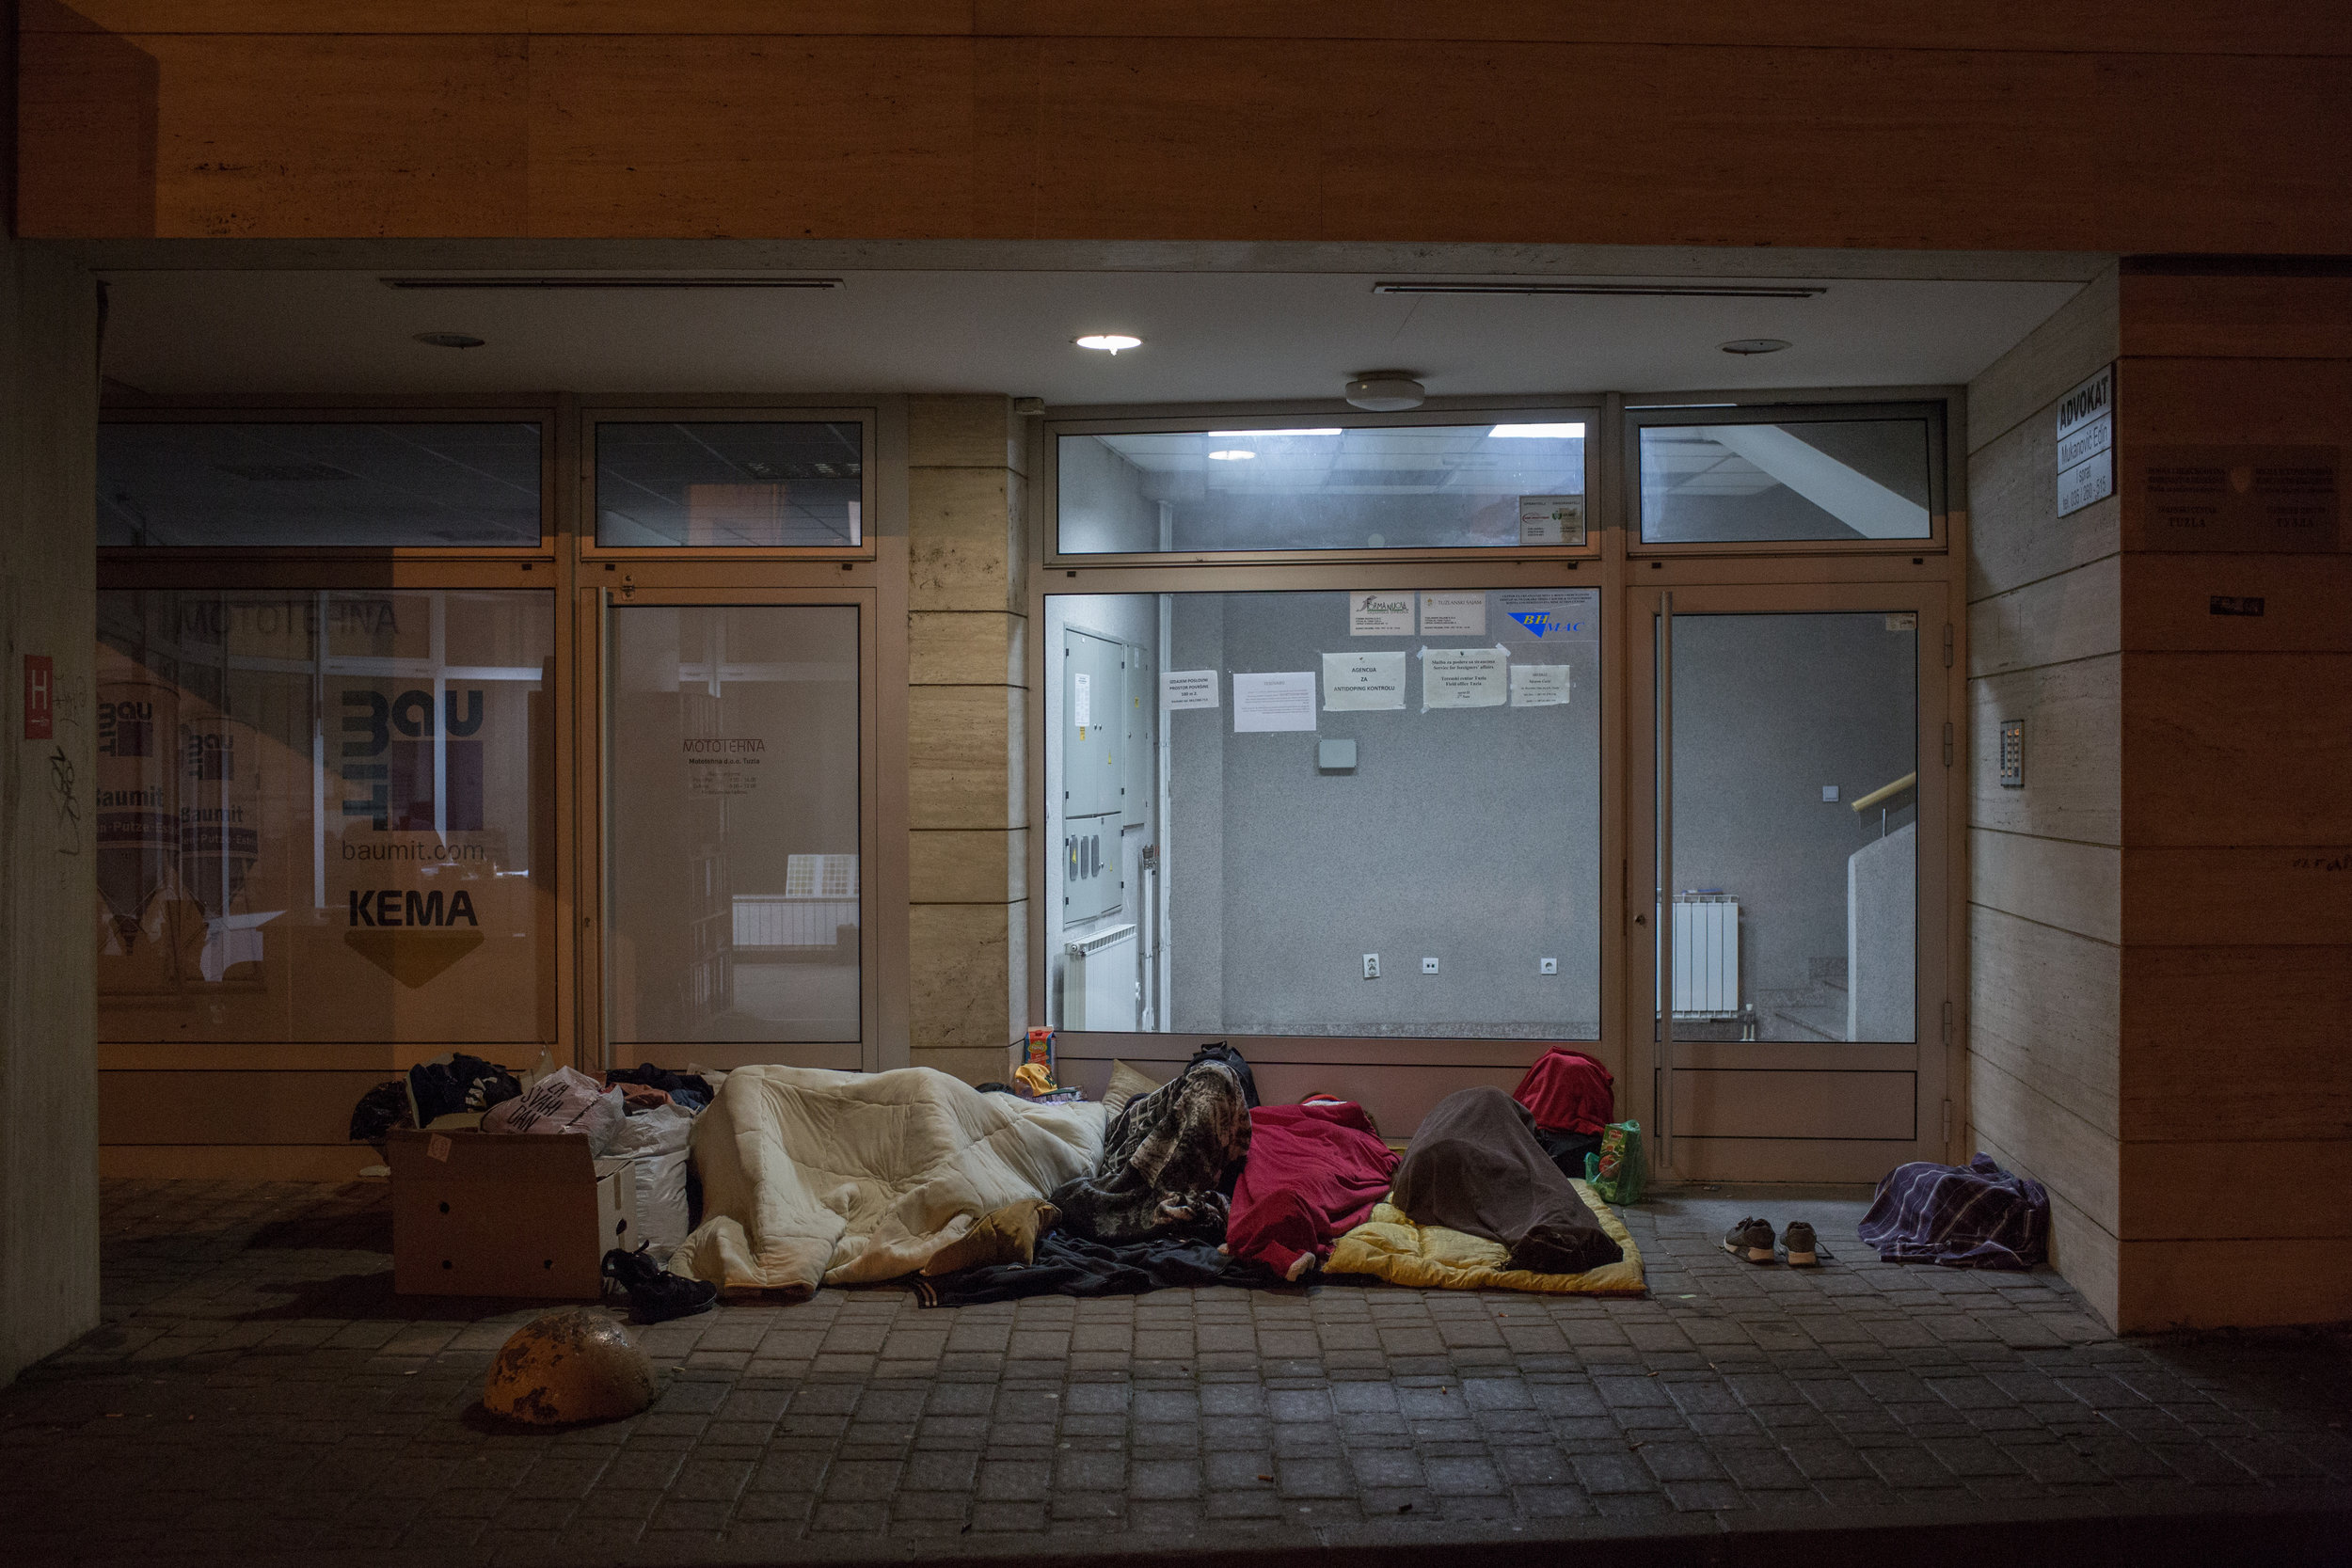 Migrants sleeping in front of the registration centre in Tuzla, the first town they enter on their way from Serbia to Bosnia.